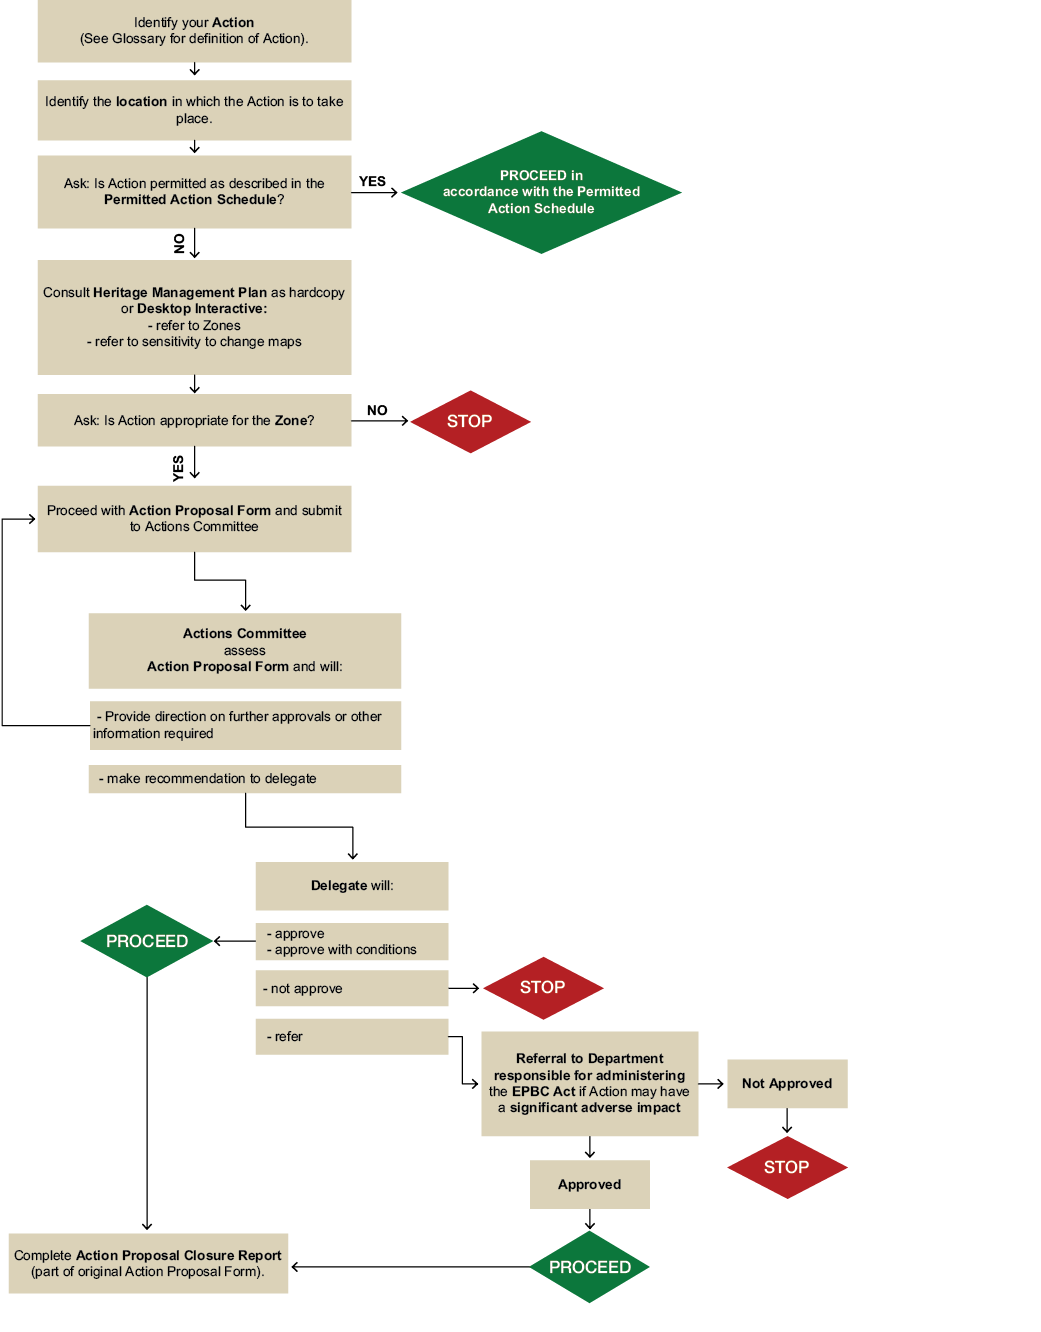 A diagram of the action proposal and assessment flowchart.